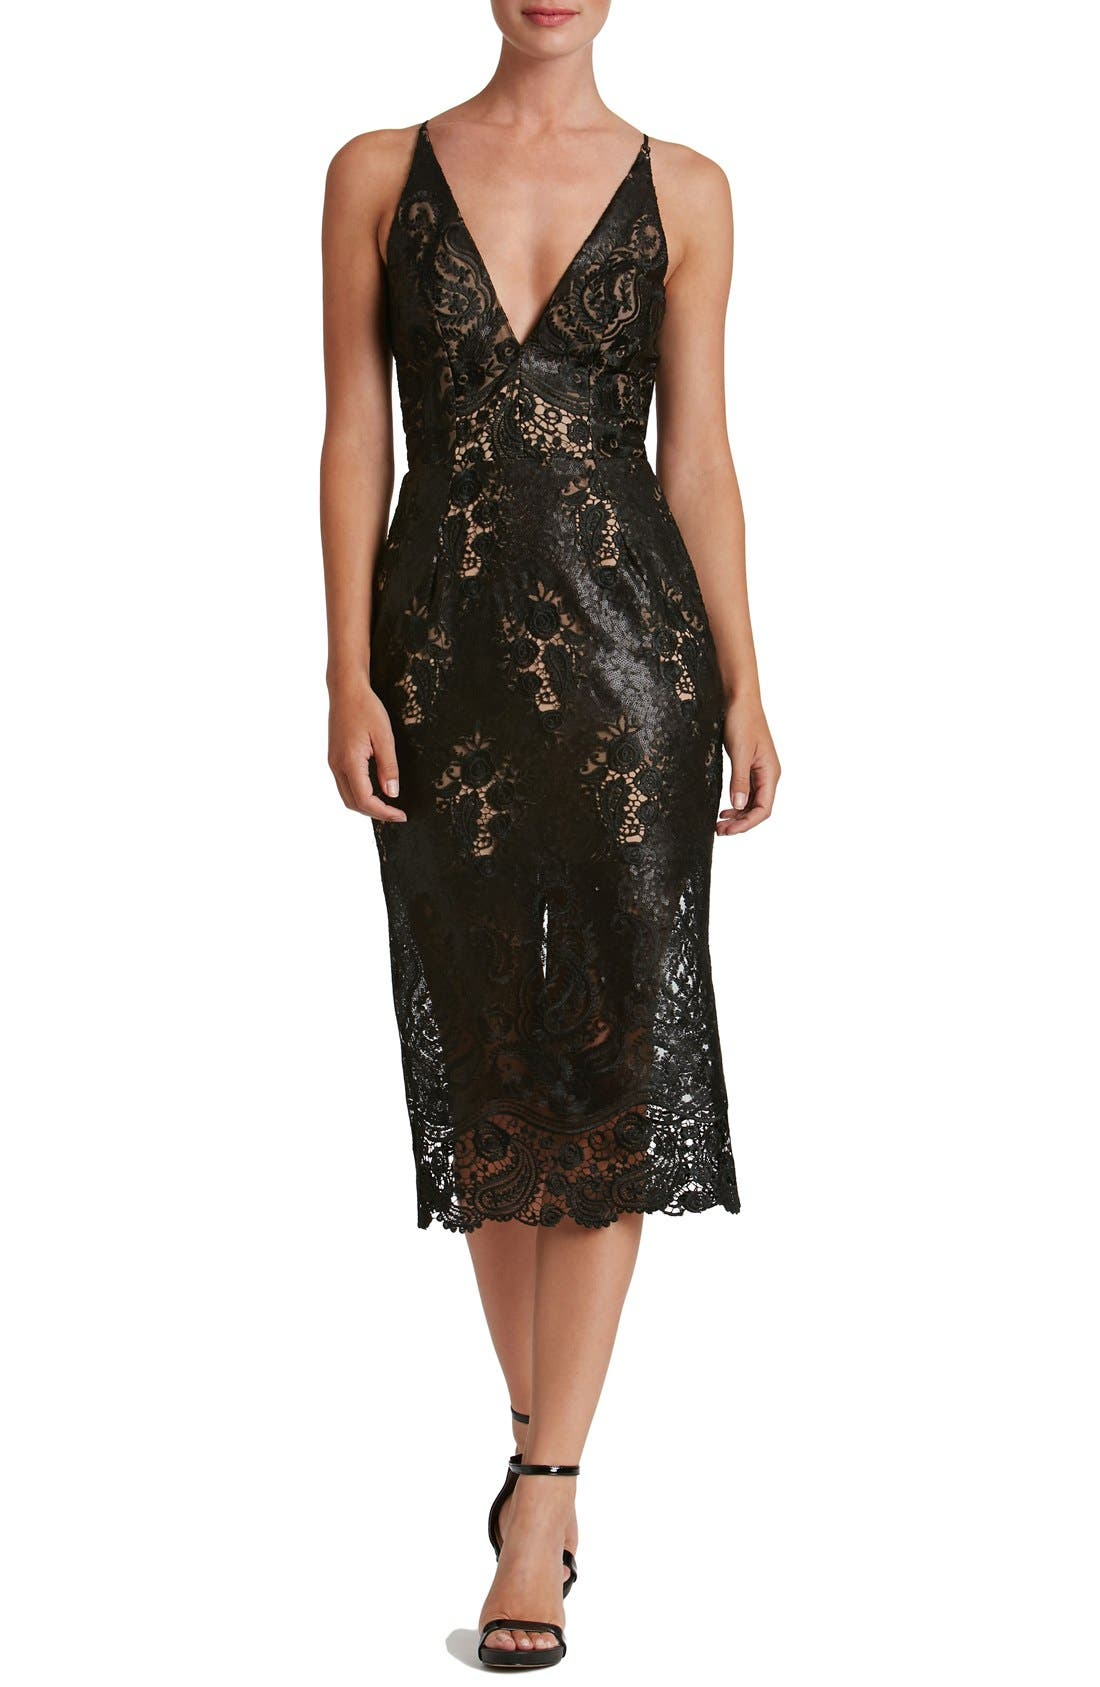 Angela Sequin Lace Midi Dress,                             Main thumbnail 1, color,                             Black/ Nude